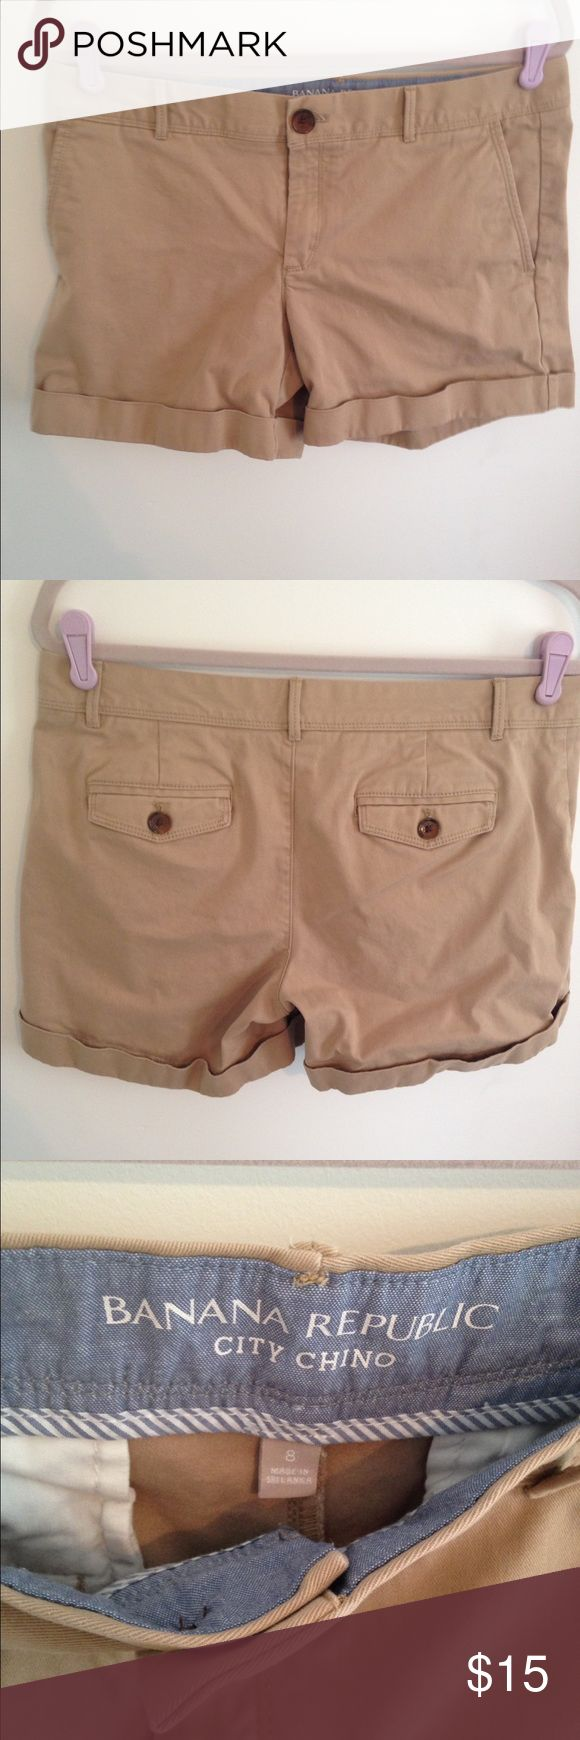 Banana Republic City Chino Rollup Shorts size 8 Banana Republic City Chino Rollup Shorts in Mateo Tan. Size 8, 98% cotton/2% spandex so they do have a little stretch. Excellent used condition, no tears or stains. Don't forget to bundle and save!! Banana Republic Shorts